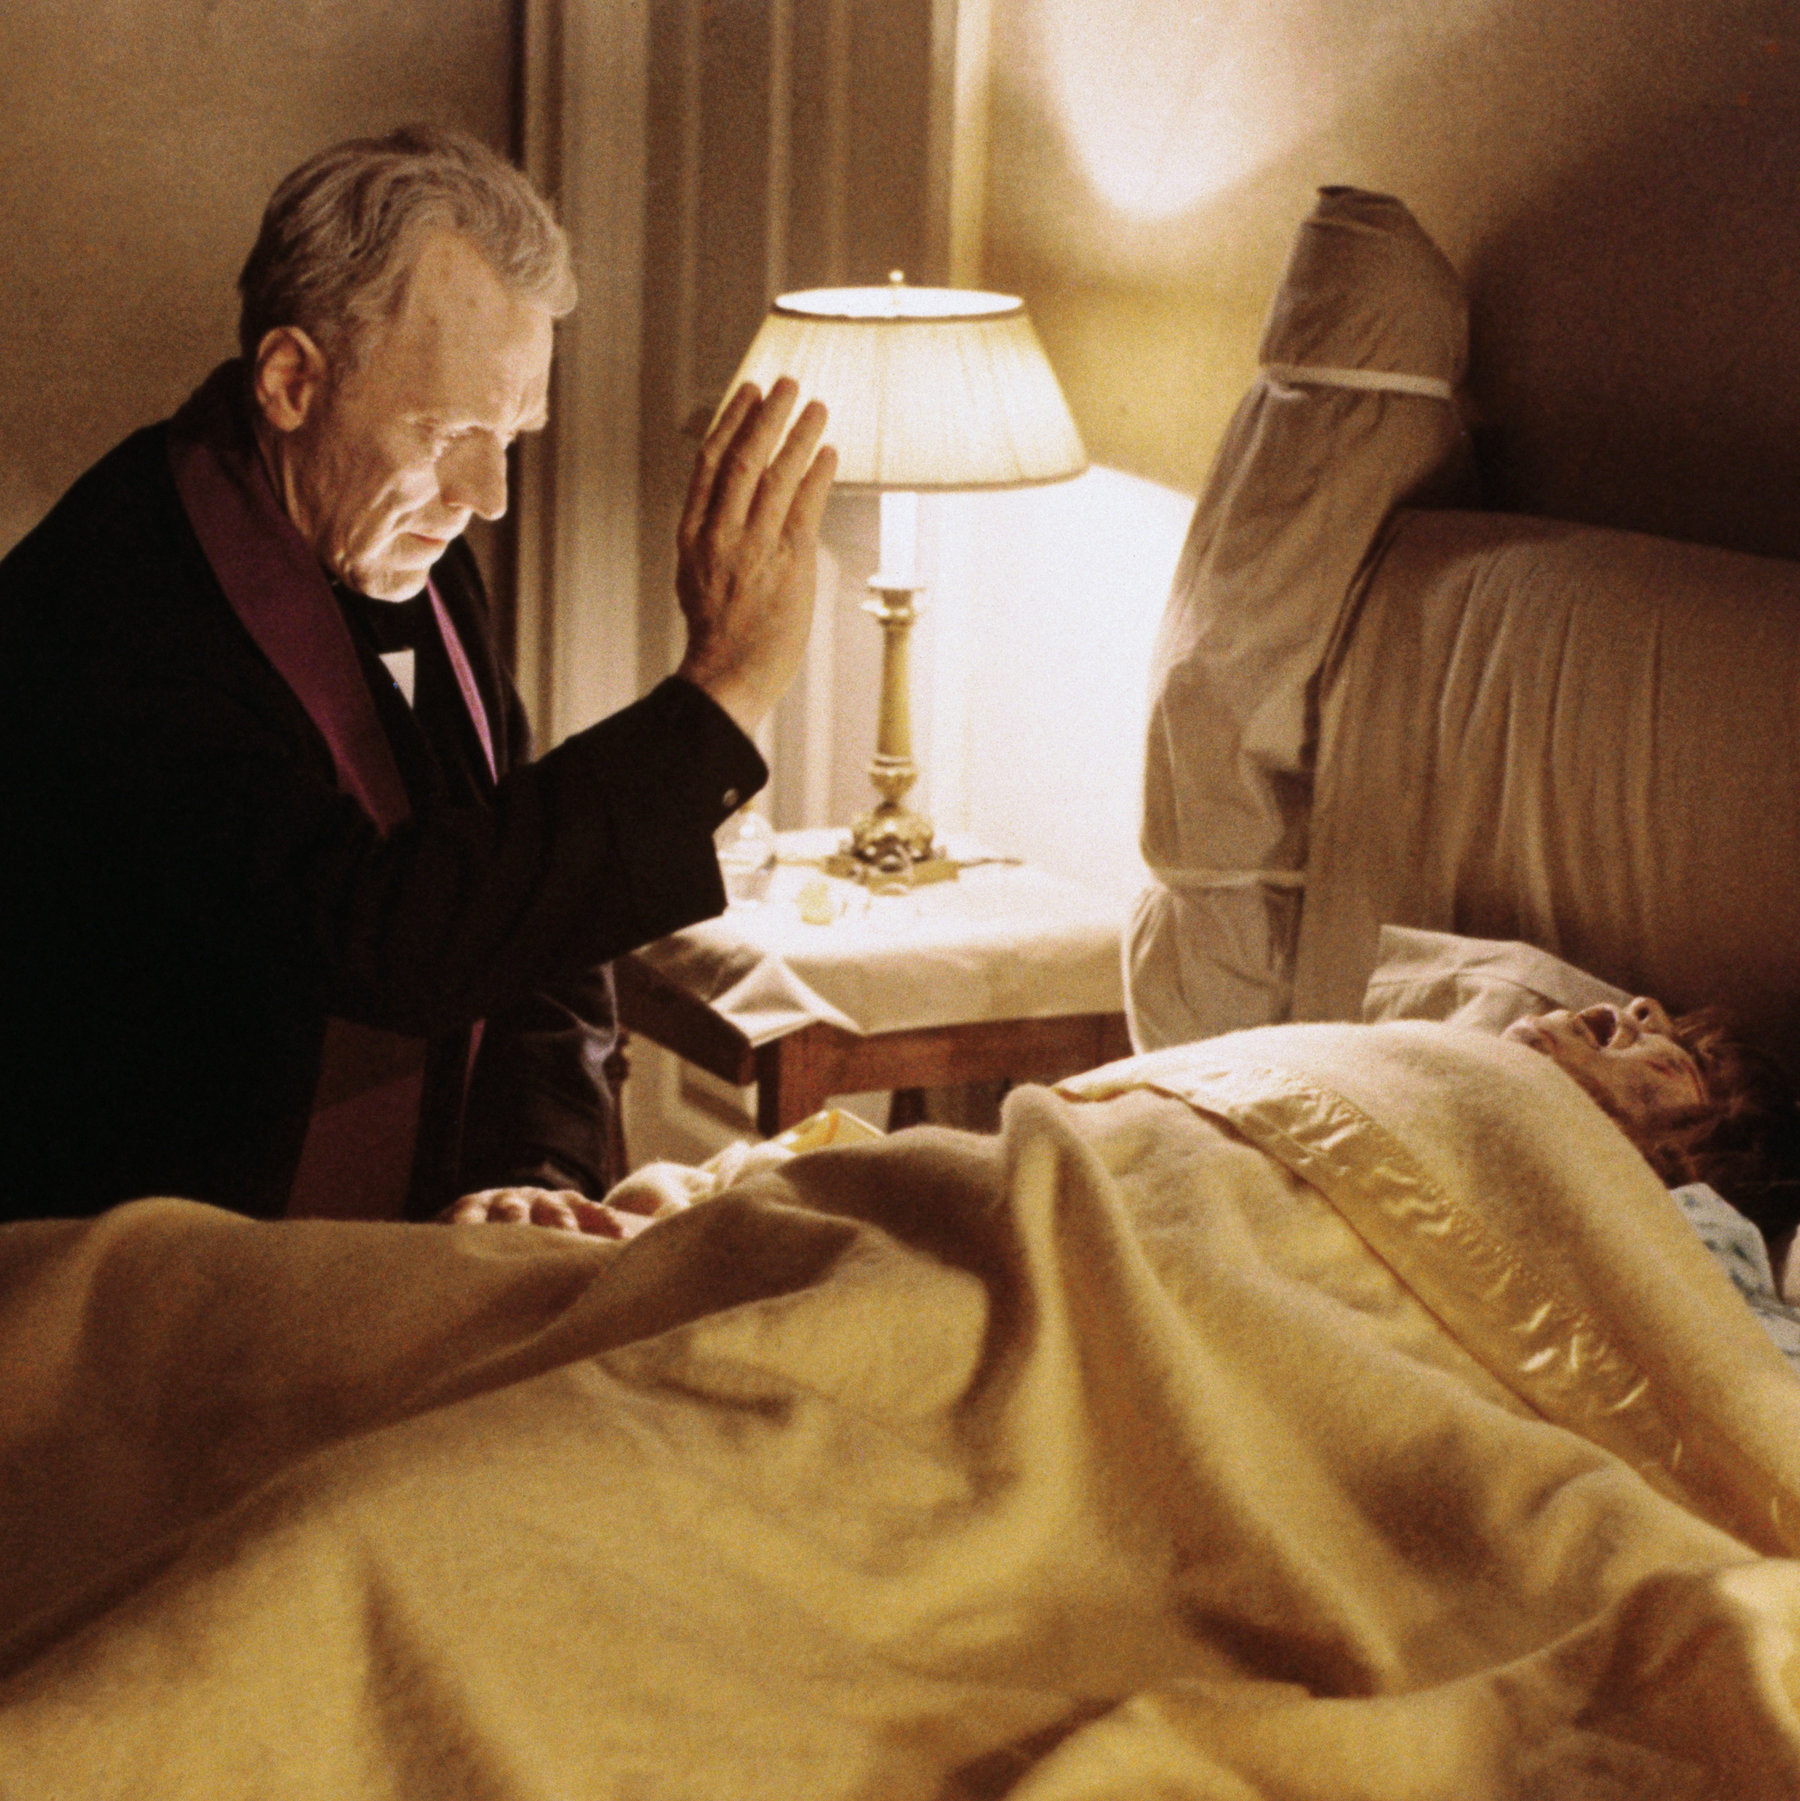 Max Von Sydow - The Exorcist - The scriptblog.com